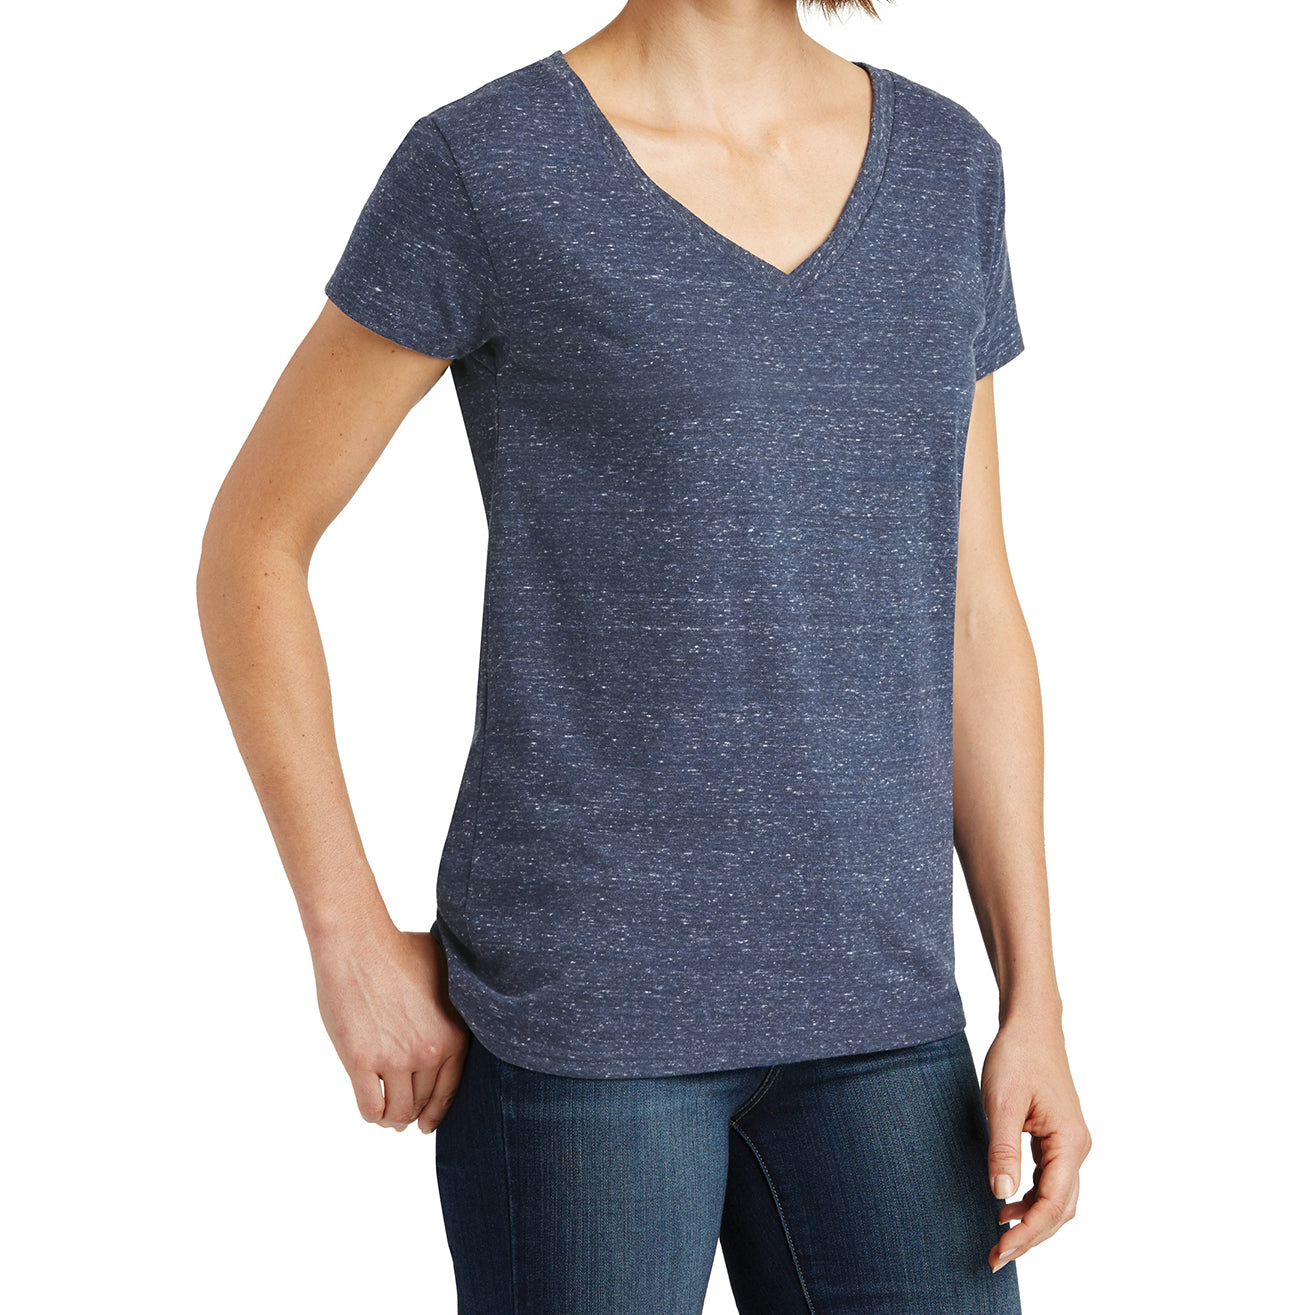 Womens Cosmic Relaxed V-Neck Tee - Navy/Royal Cosmic - Side